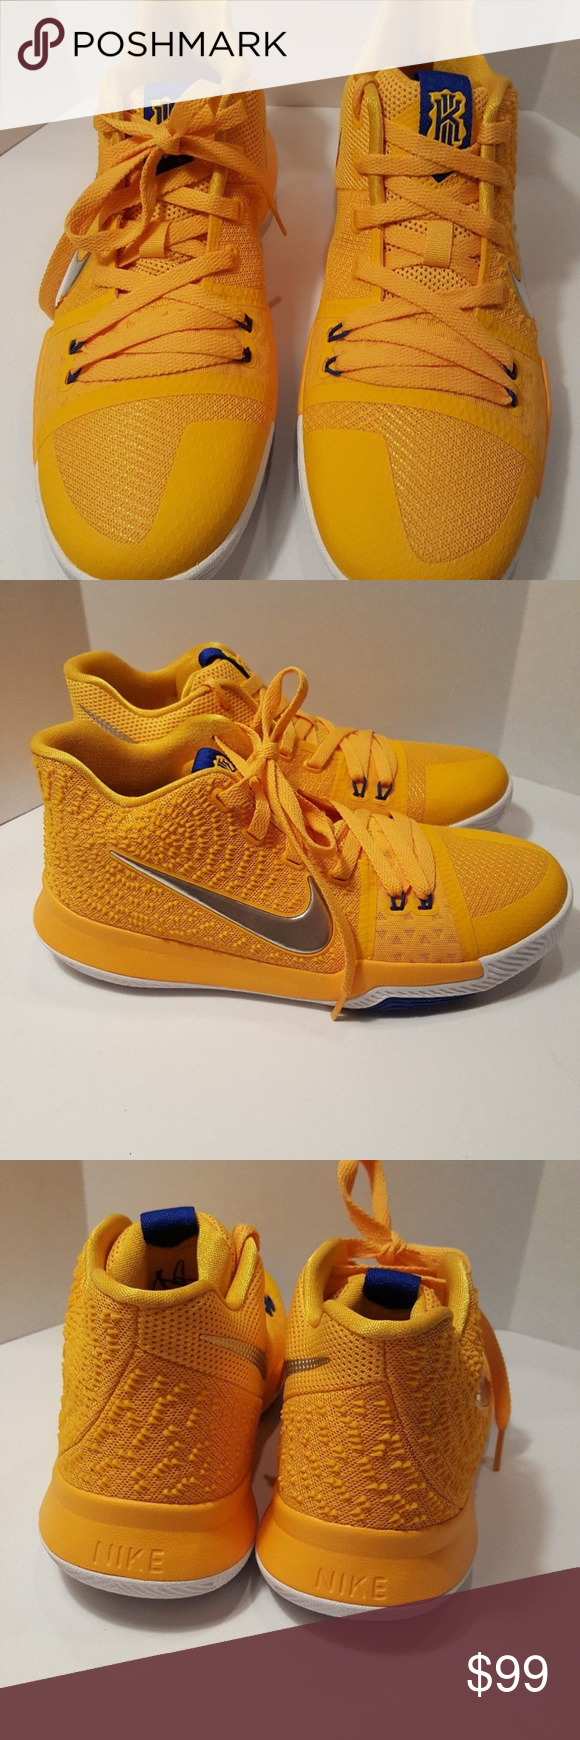 on sale e8eae 1e0ff Nike Kyrie 3 GS 859466 791 sz 7Y ITEM  NIKE KYRIE MAC AND CHEESE SIZE